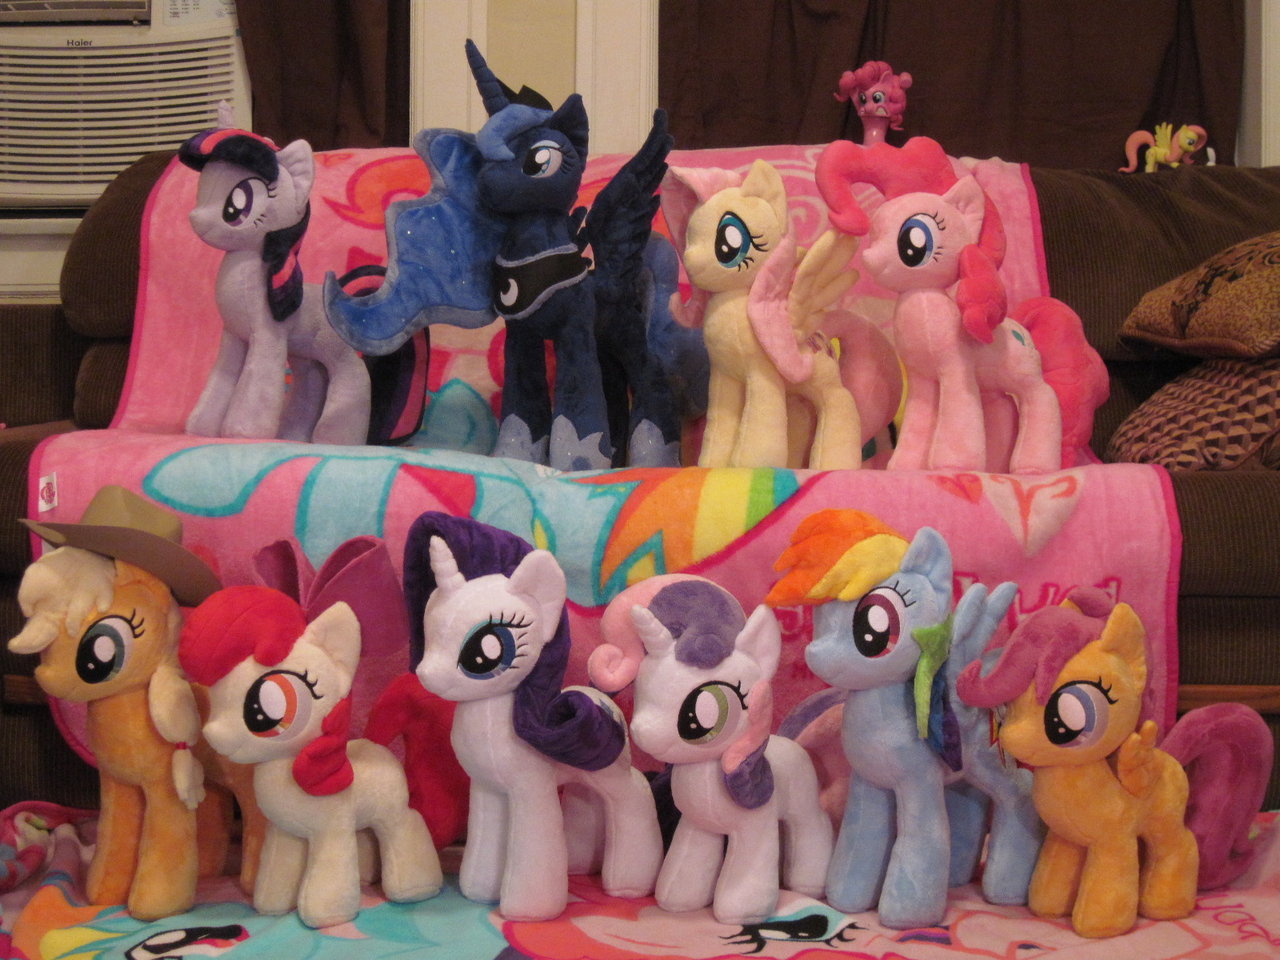 Plushy ponies by blackout...